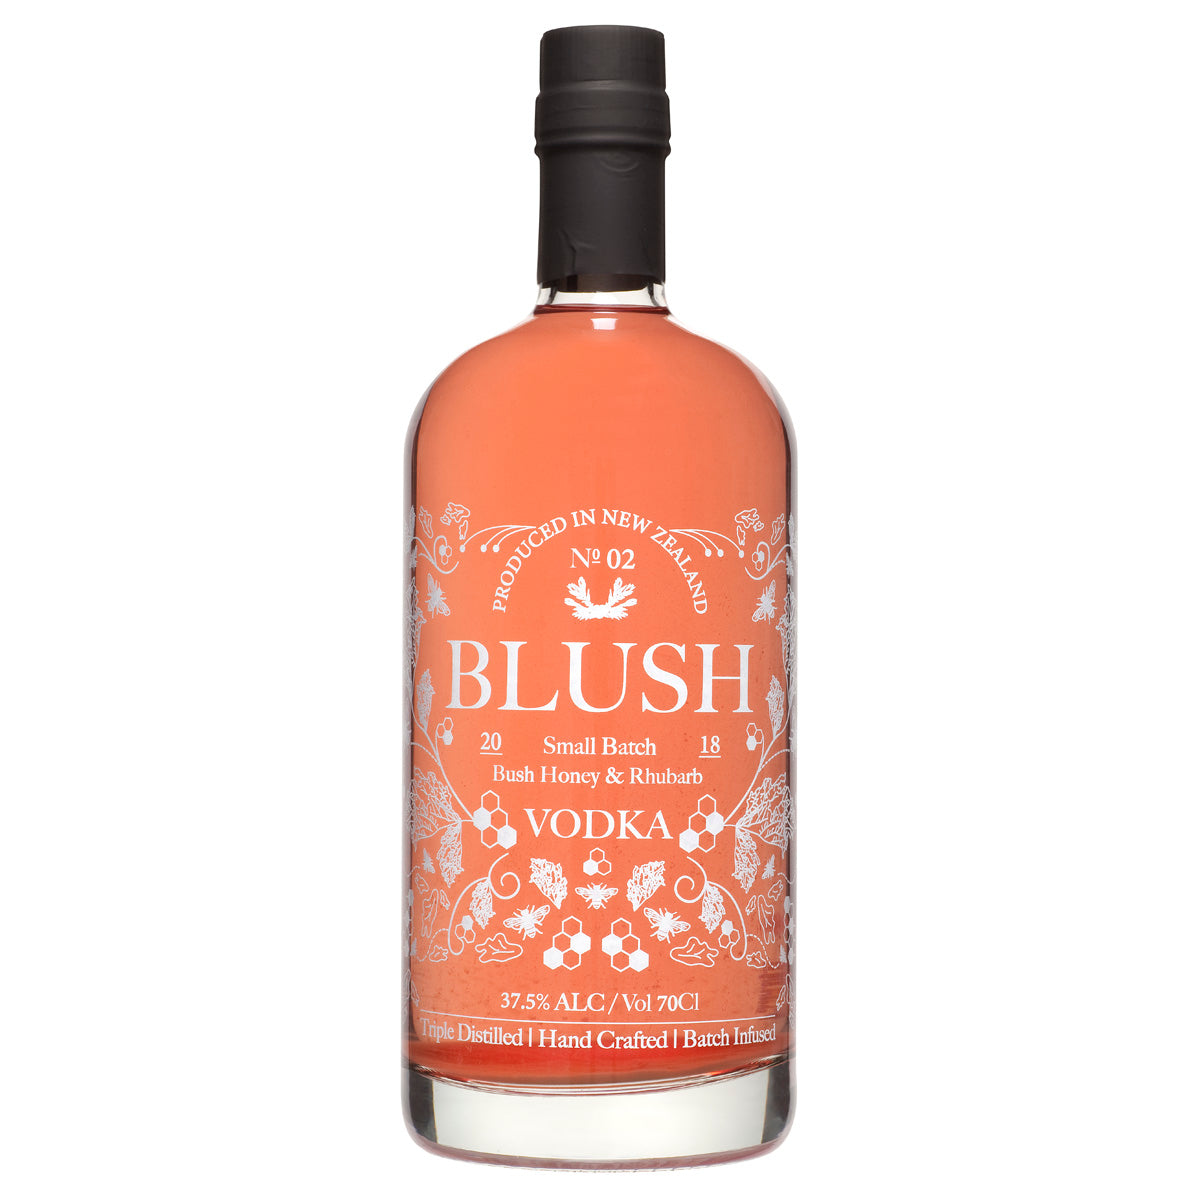 Blush Bush Honey Vodka